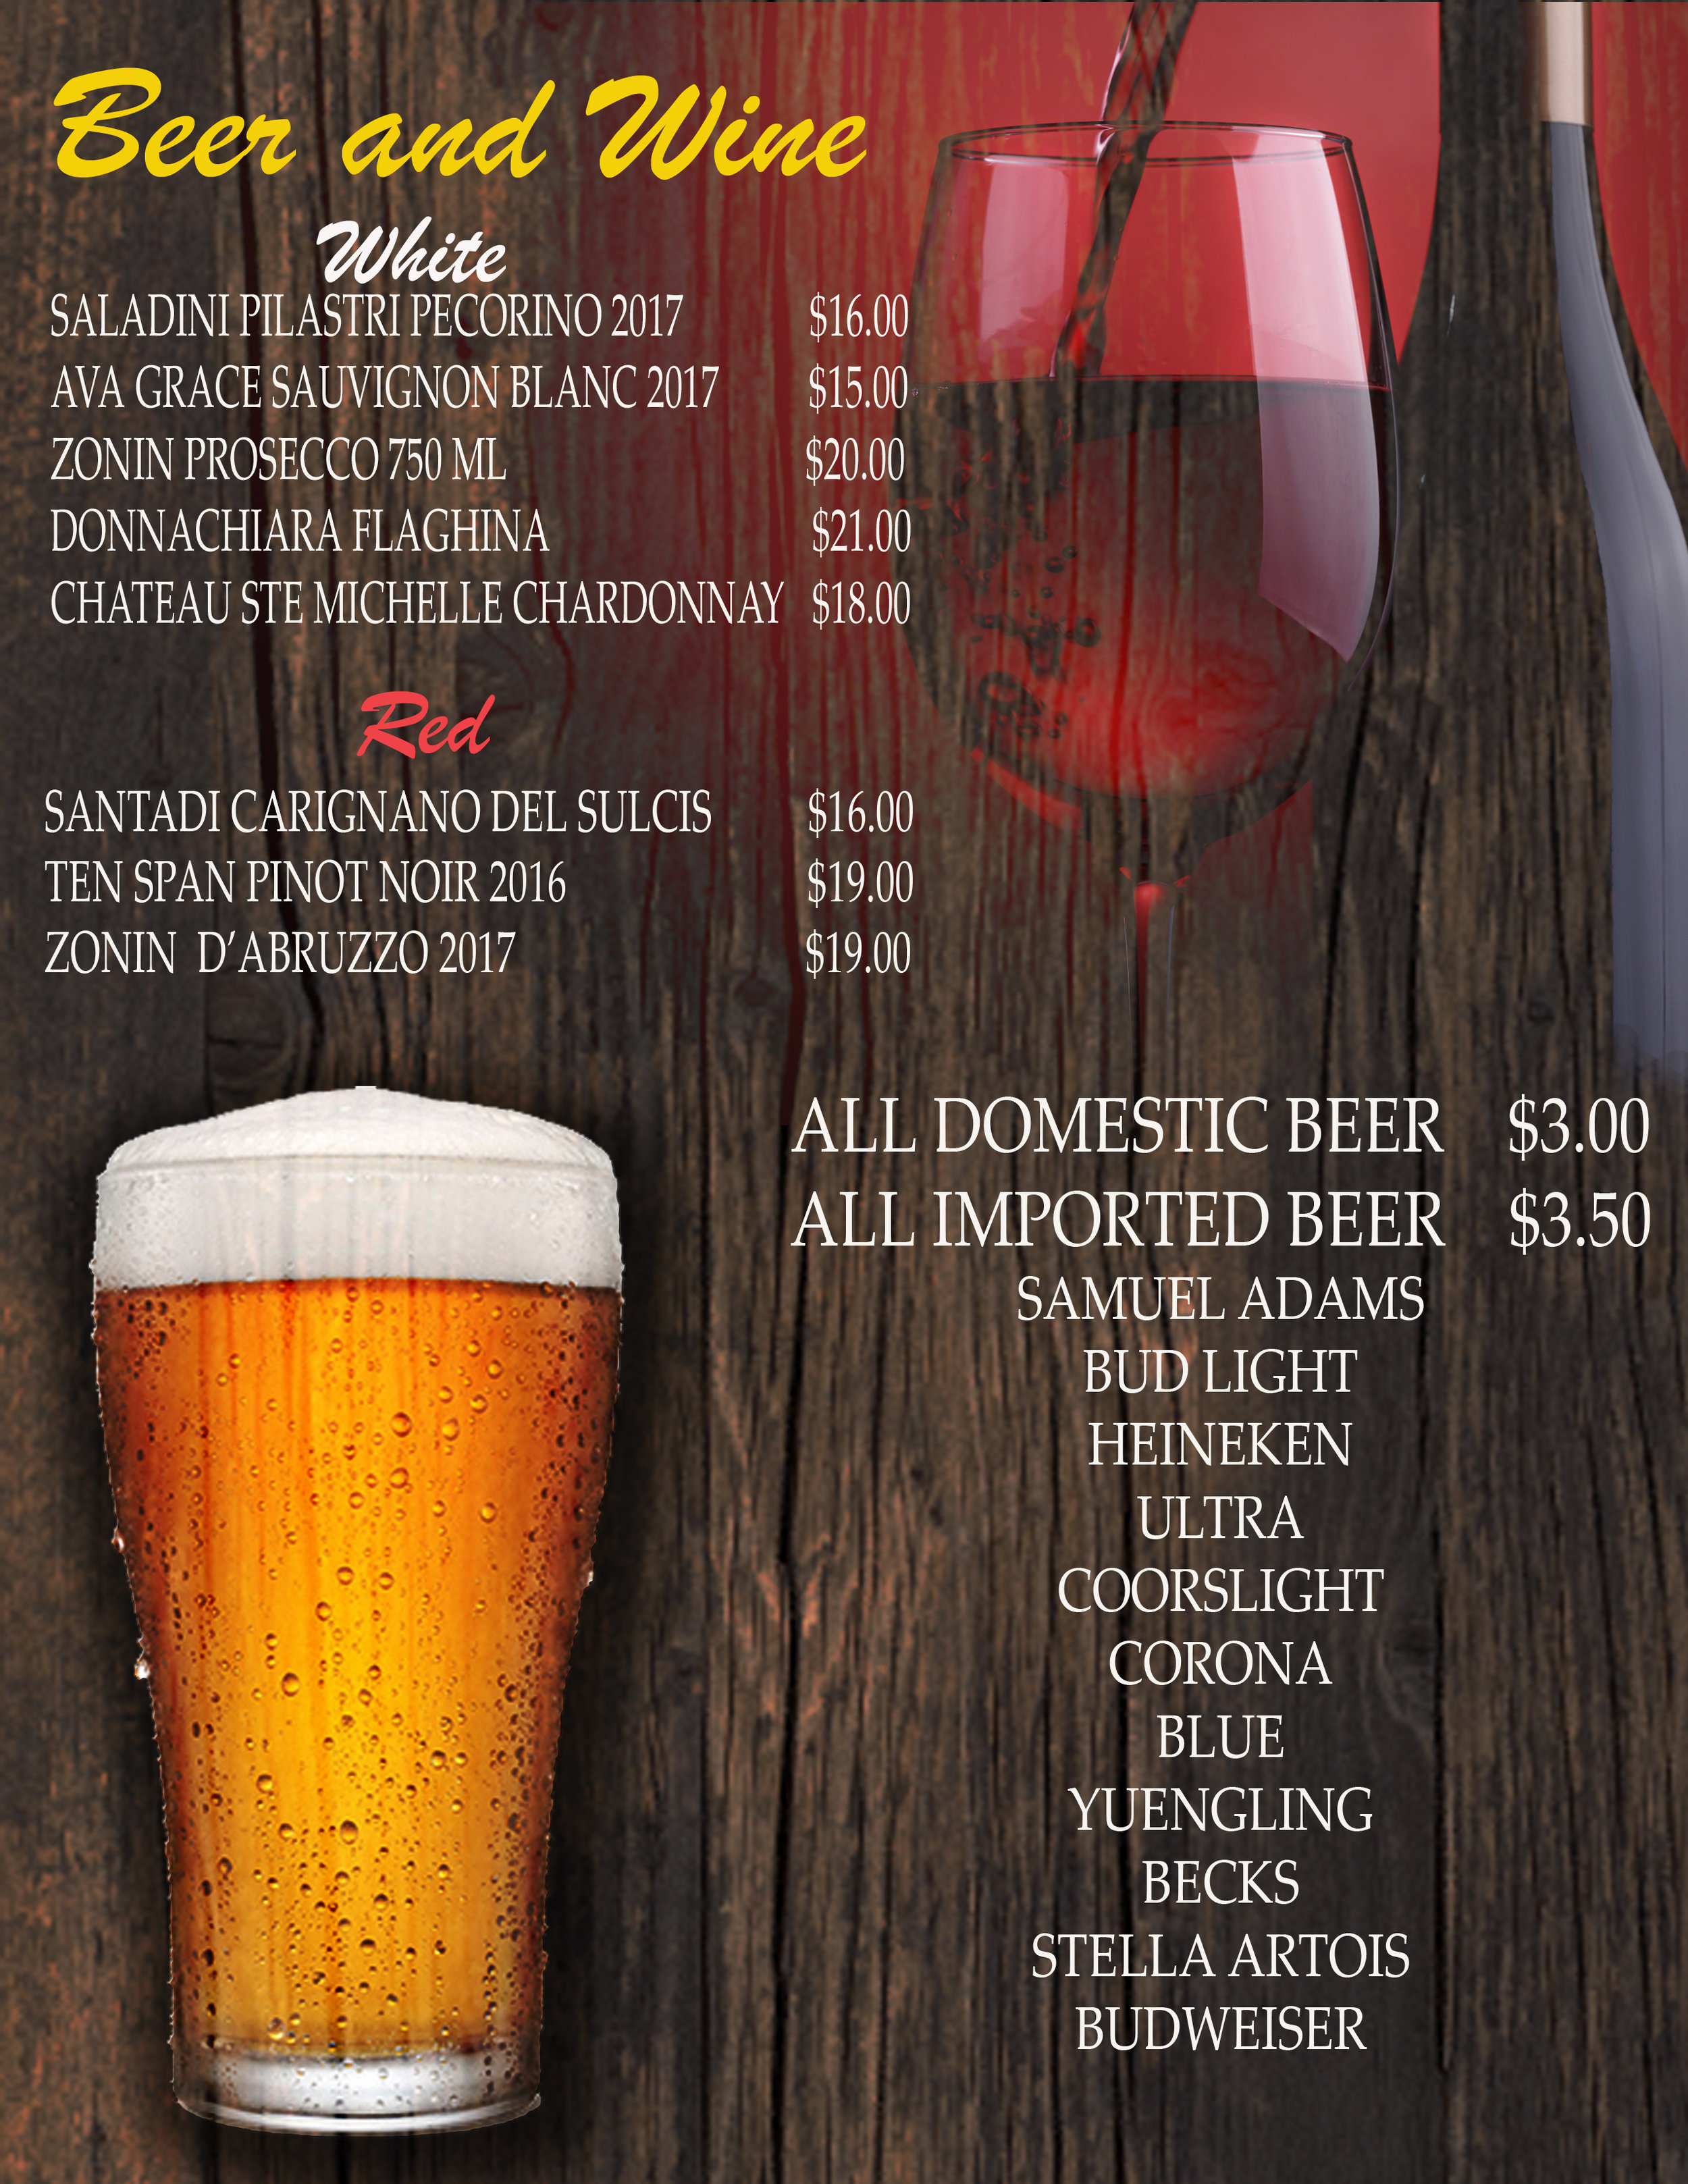 Beer and Wine Menu new.jpg